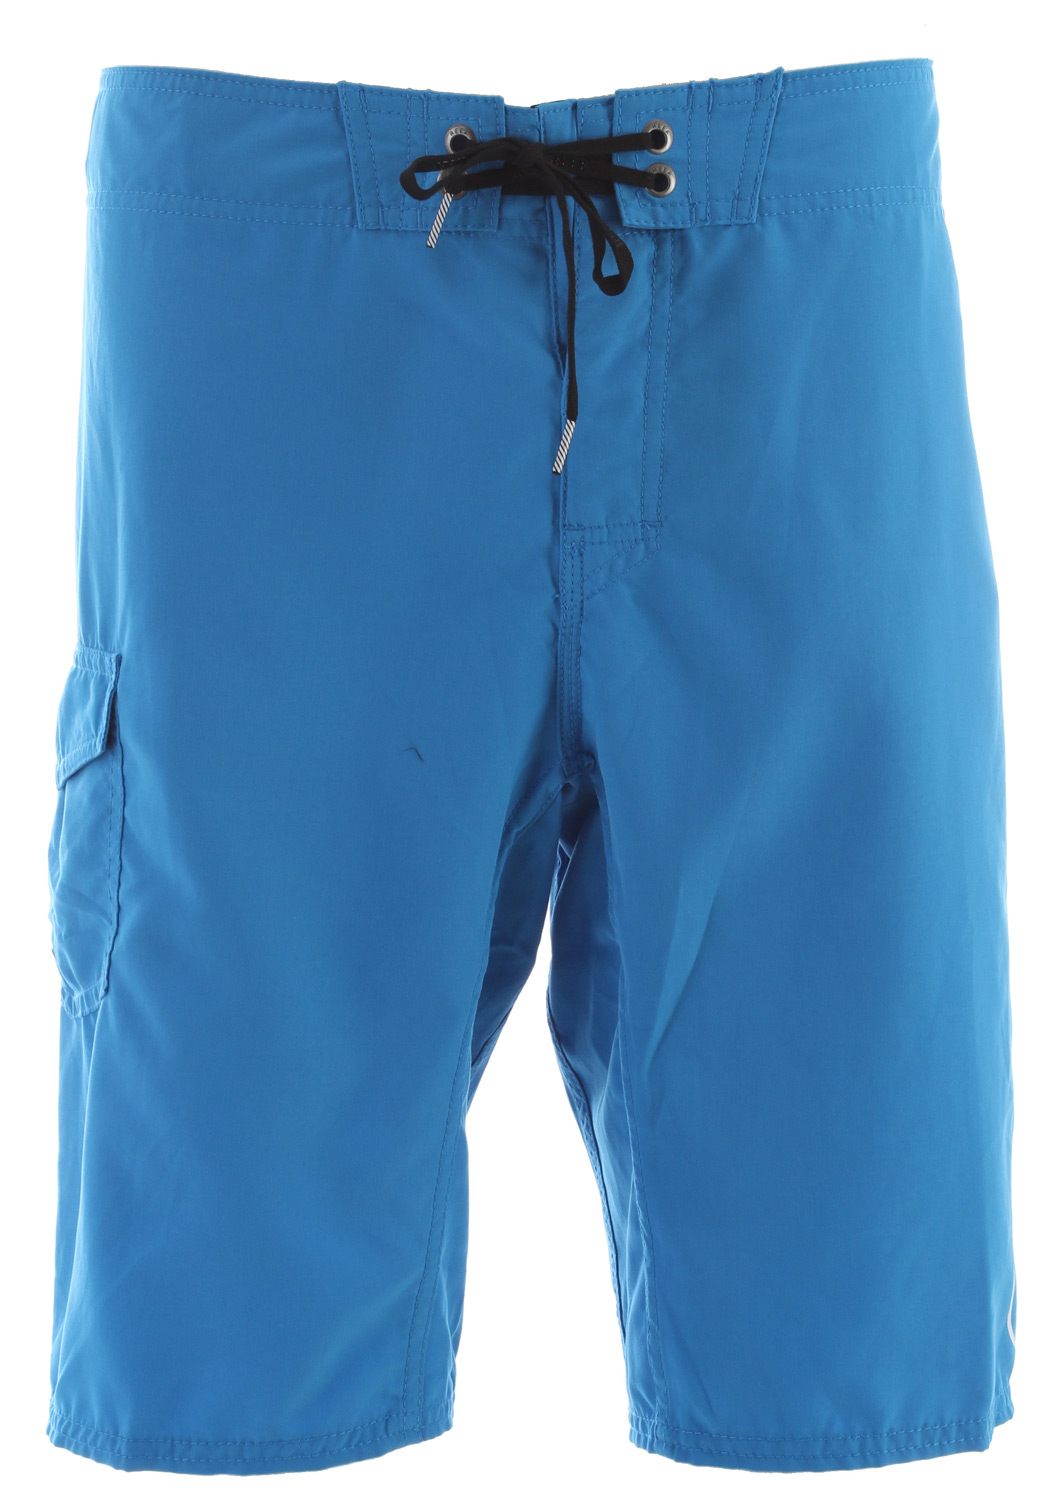 "Surf Key Features of the Reef Ponto III Boardshorts: Recycled doubleshaka 50% recycled polyester, 50% polyester sideseamless sidepatch pocket 21"" outseam standard fit - $44.00"